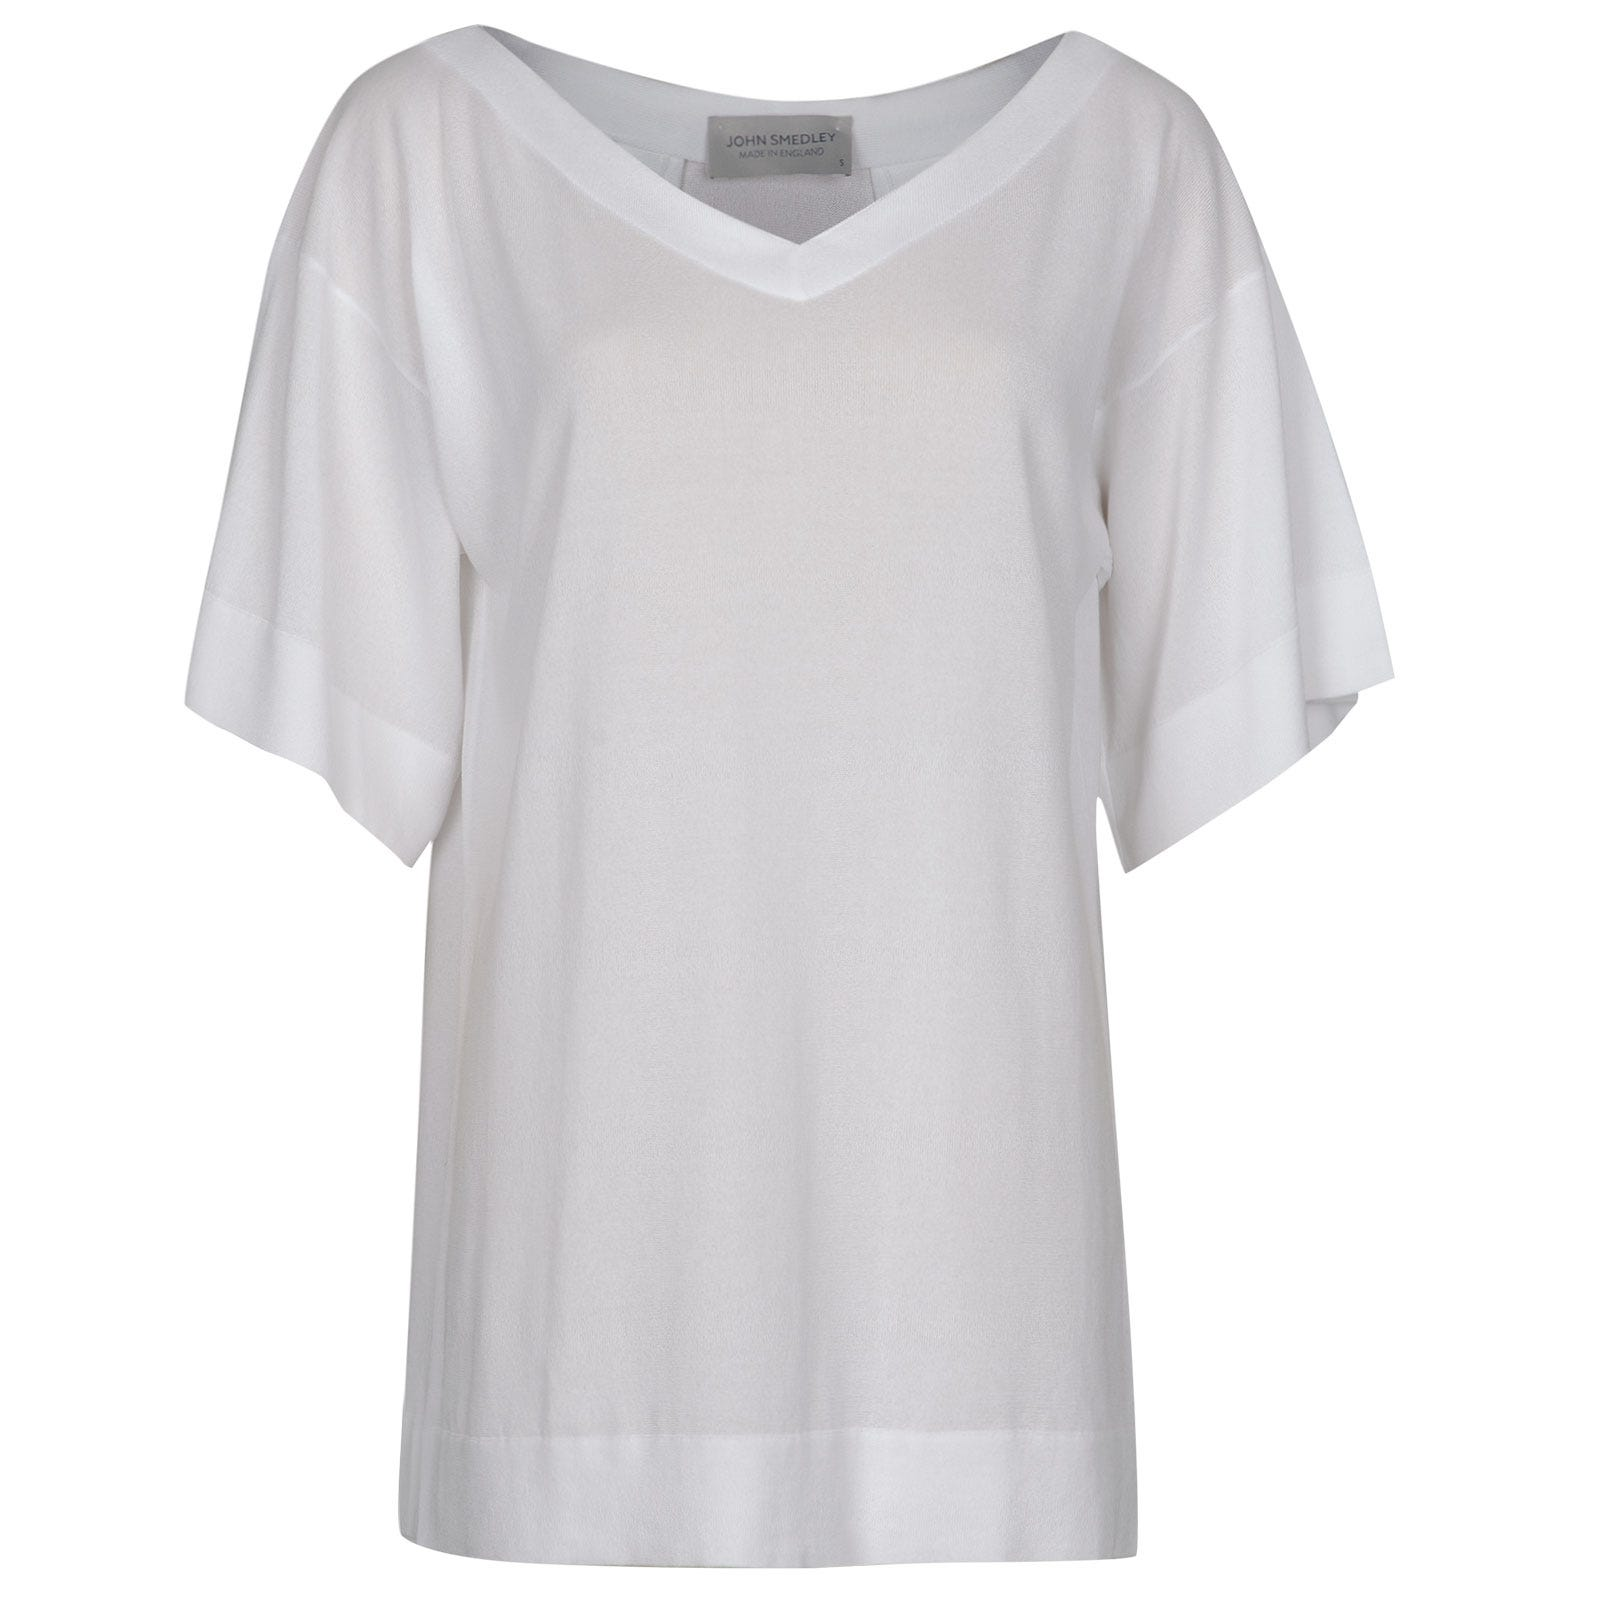 John Smedley Lea Merino Wool T-shirt in White-XL